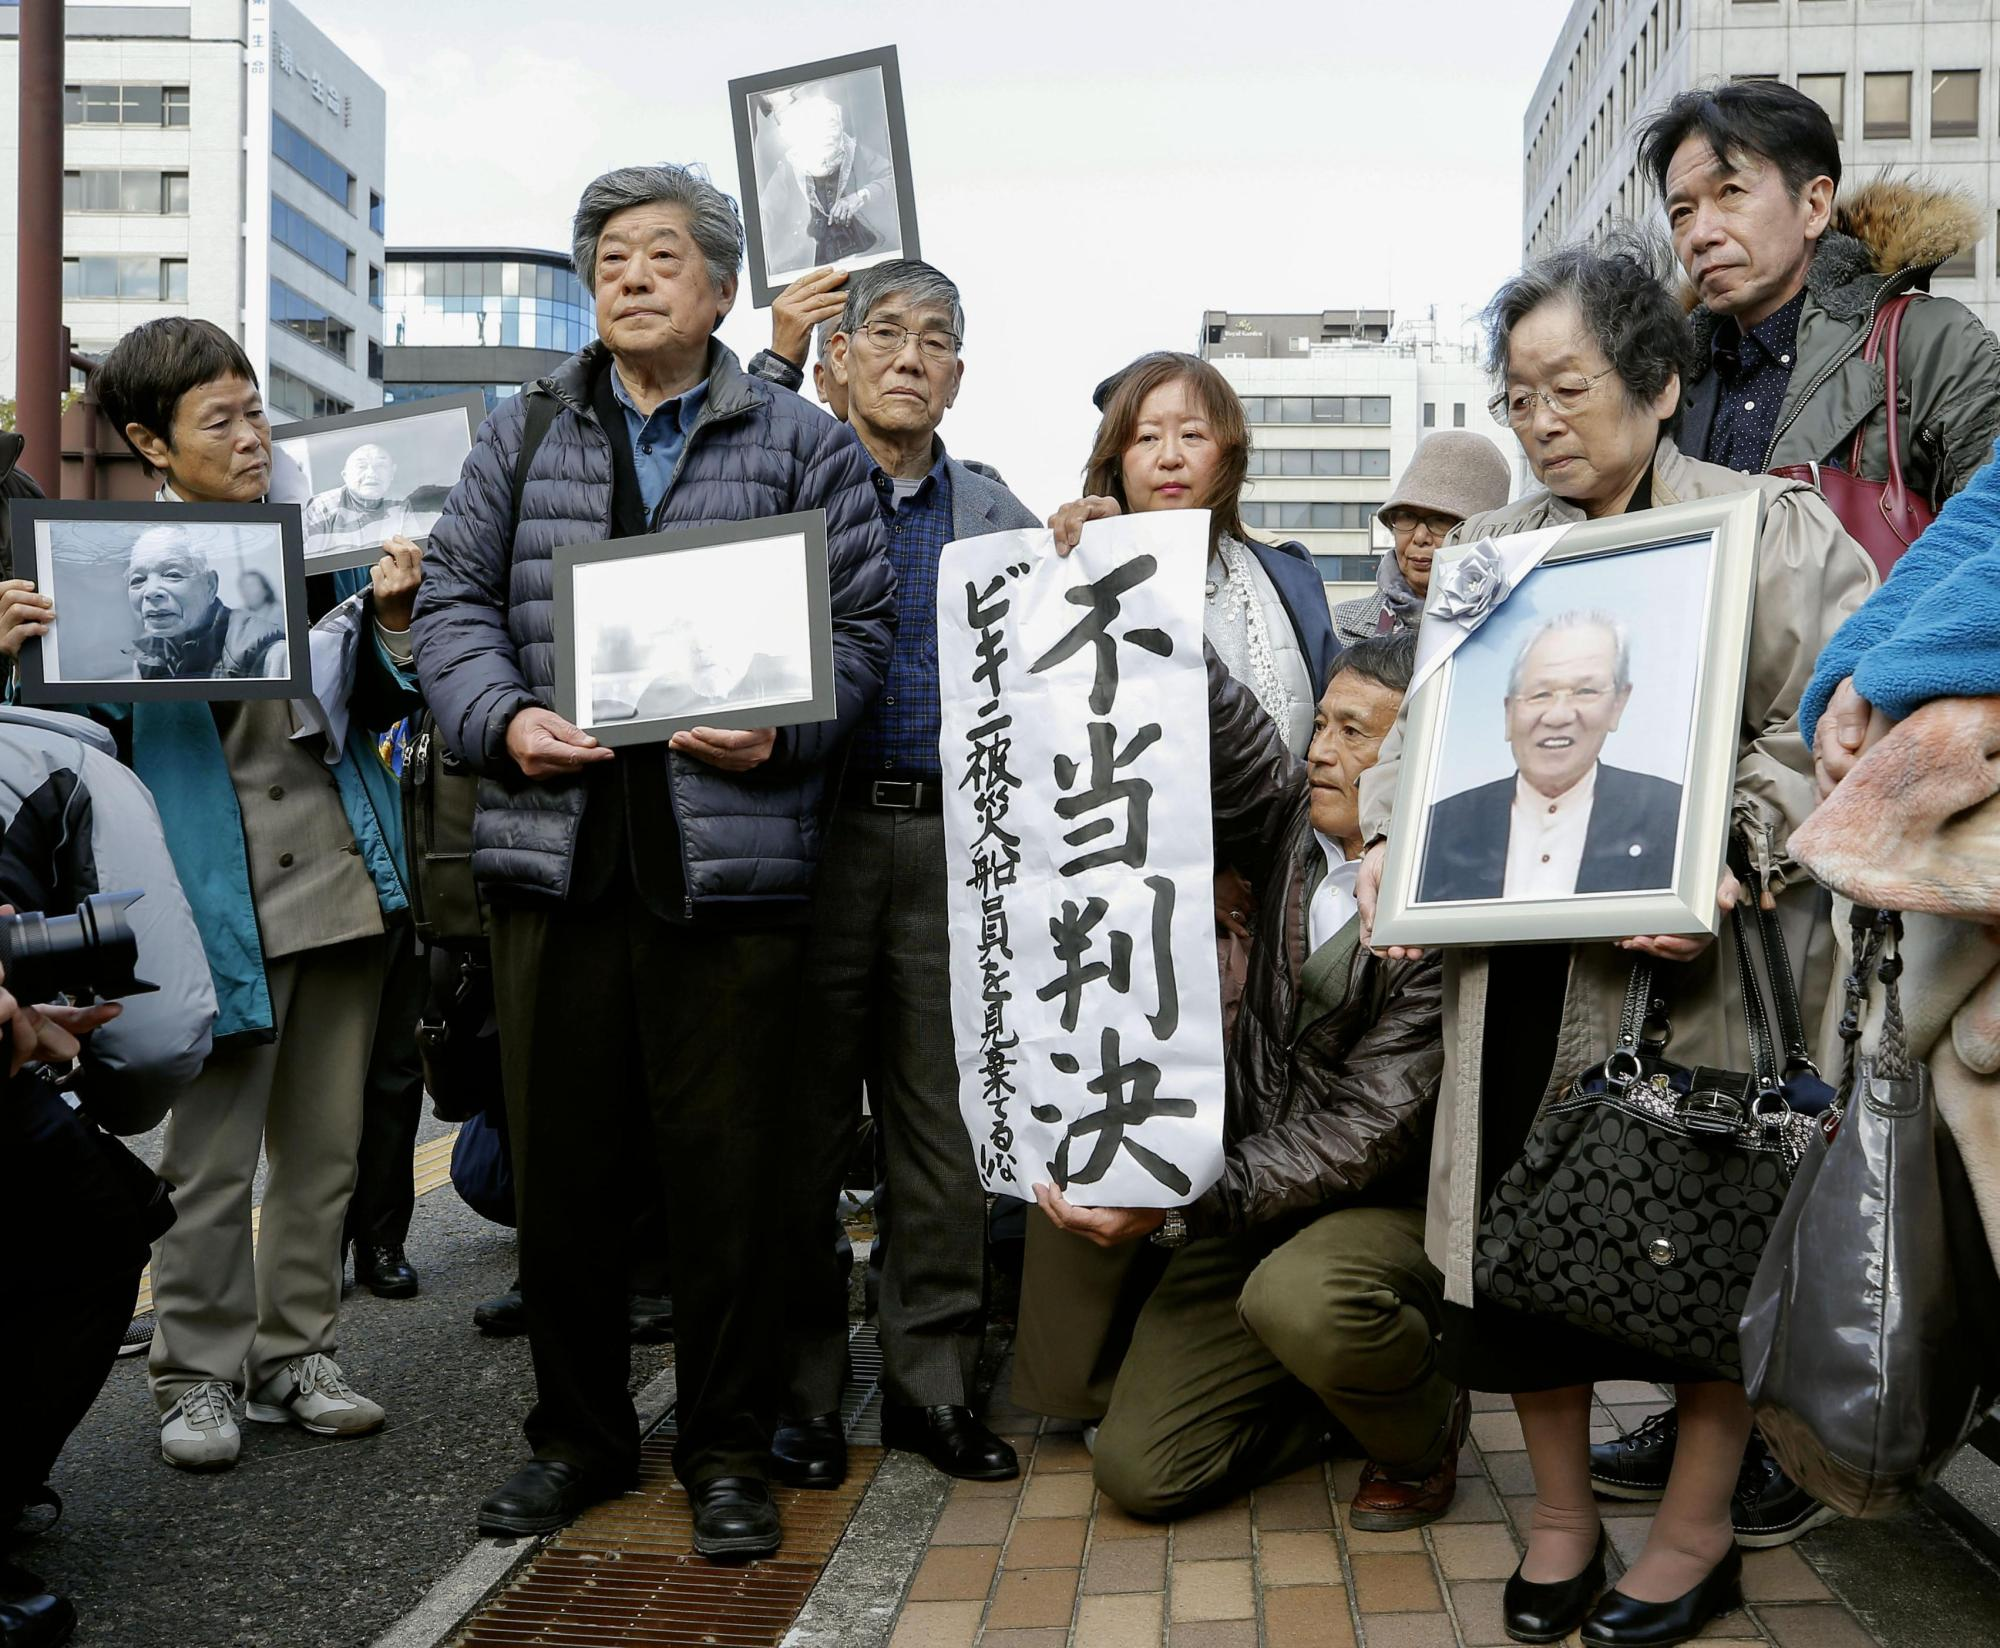 Supporters of the plaintiffs denounce a high court decision to uphold a lower court ruling that rejected a claim by former tuna fishermen and bereaved relatives for state compensation over the 1954 U.S. hydrogen bomb tests at Bikini Atoll, in Takamatsu, Kagawa Prefecture, on Thursday. | KYODO